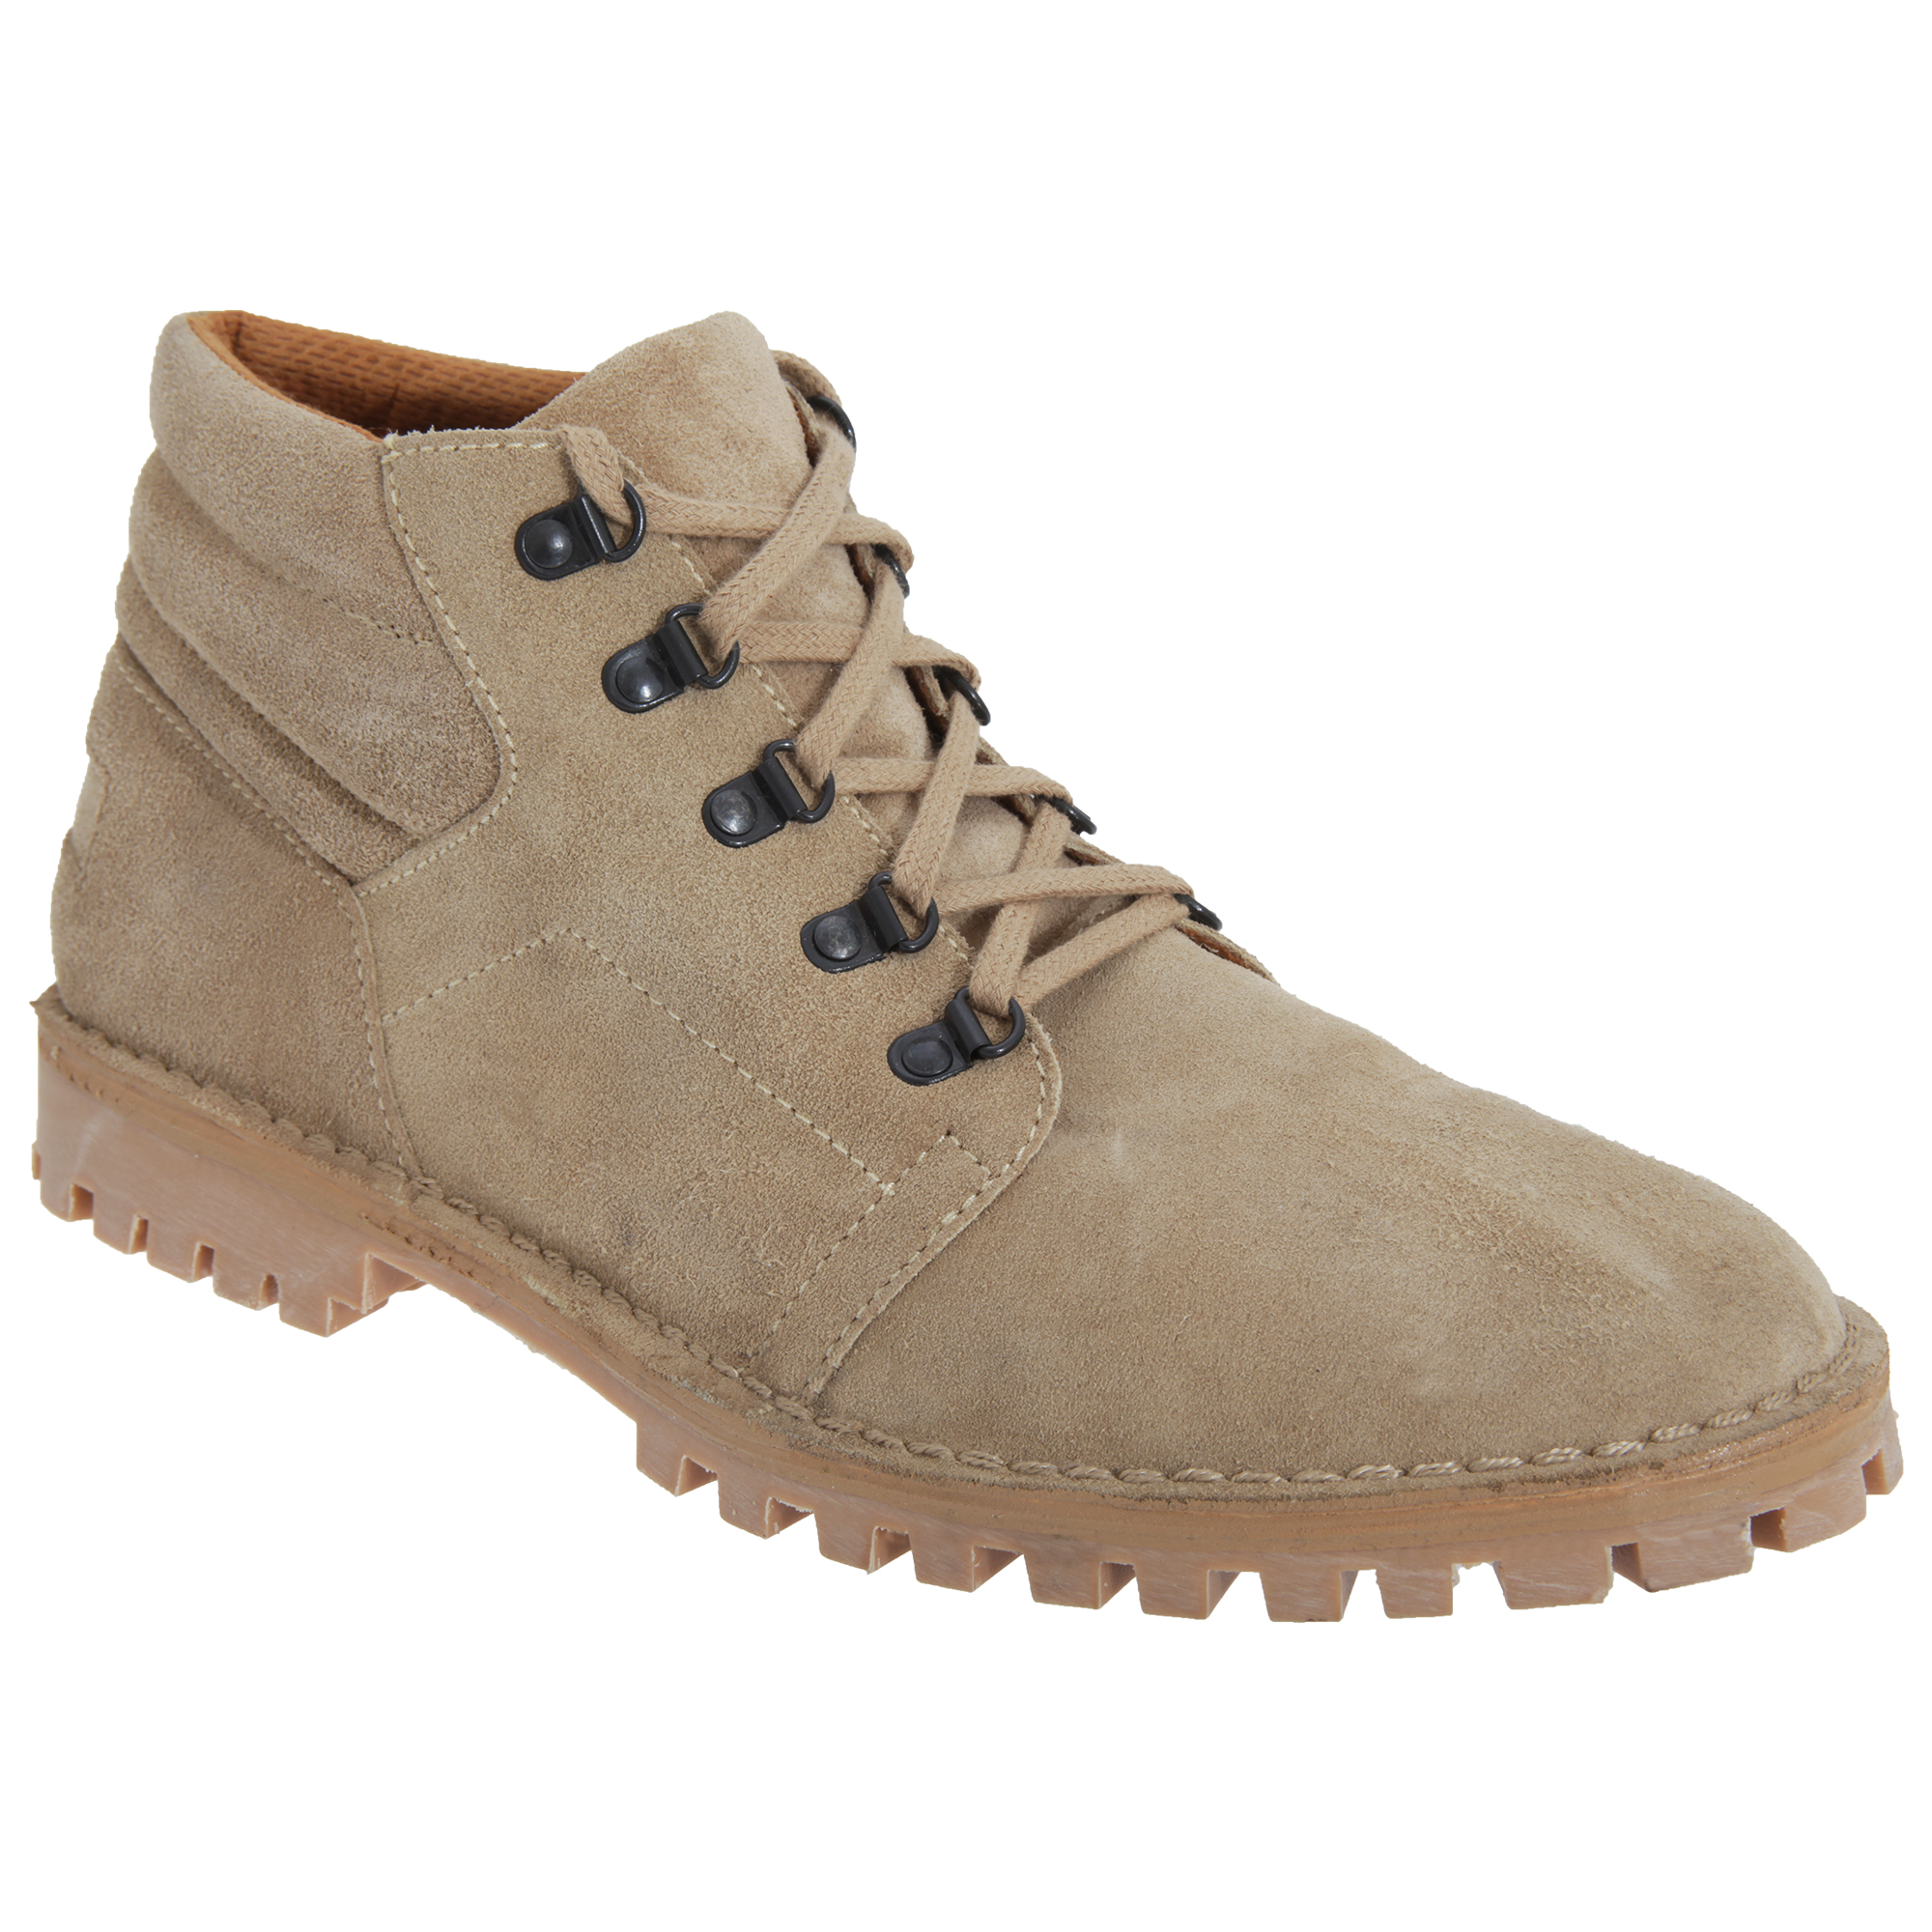 Roamers Mens Real Suede D Ring Leisure Boots (12 UK) (Light Taupe)